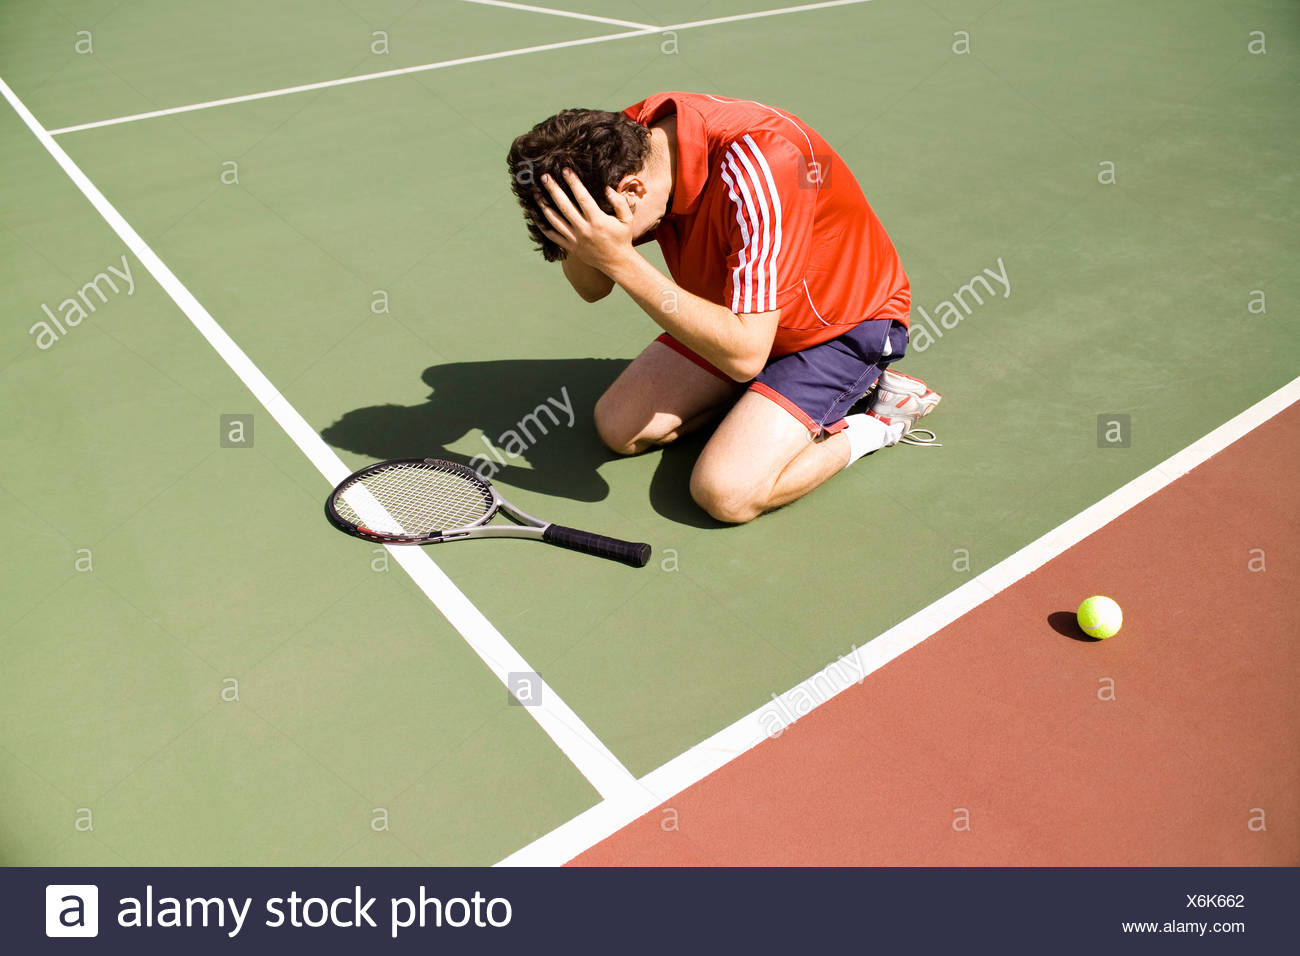 A tennis player kneeling on the court in defeat - Stock Image